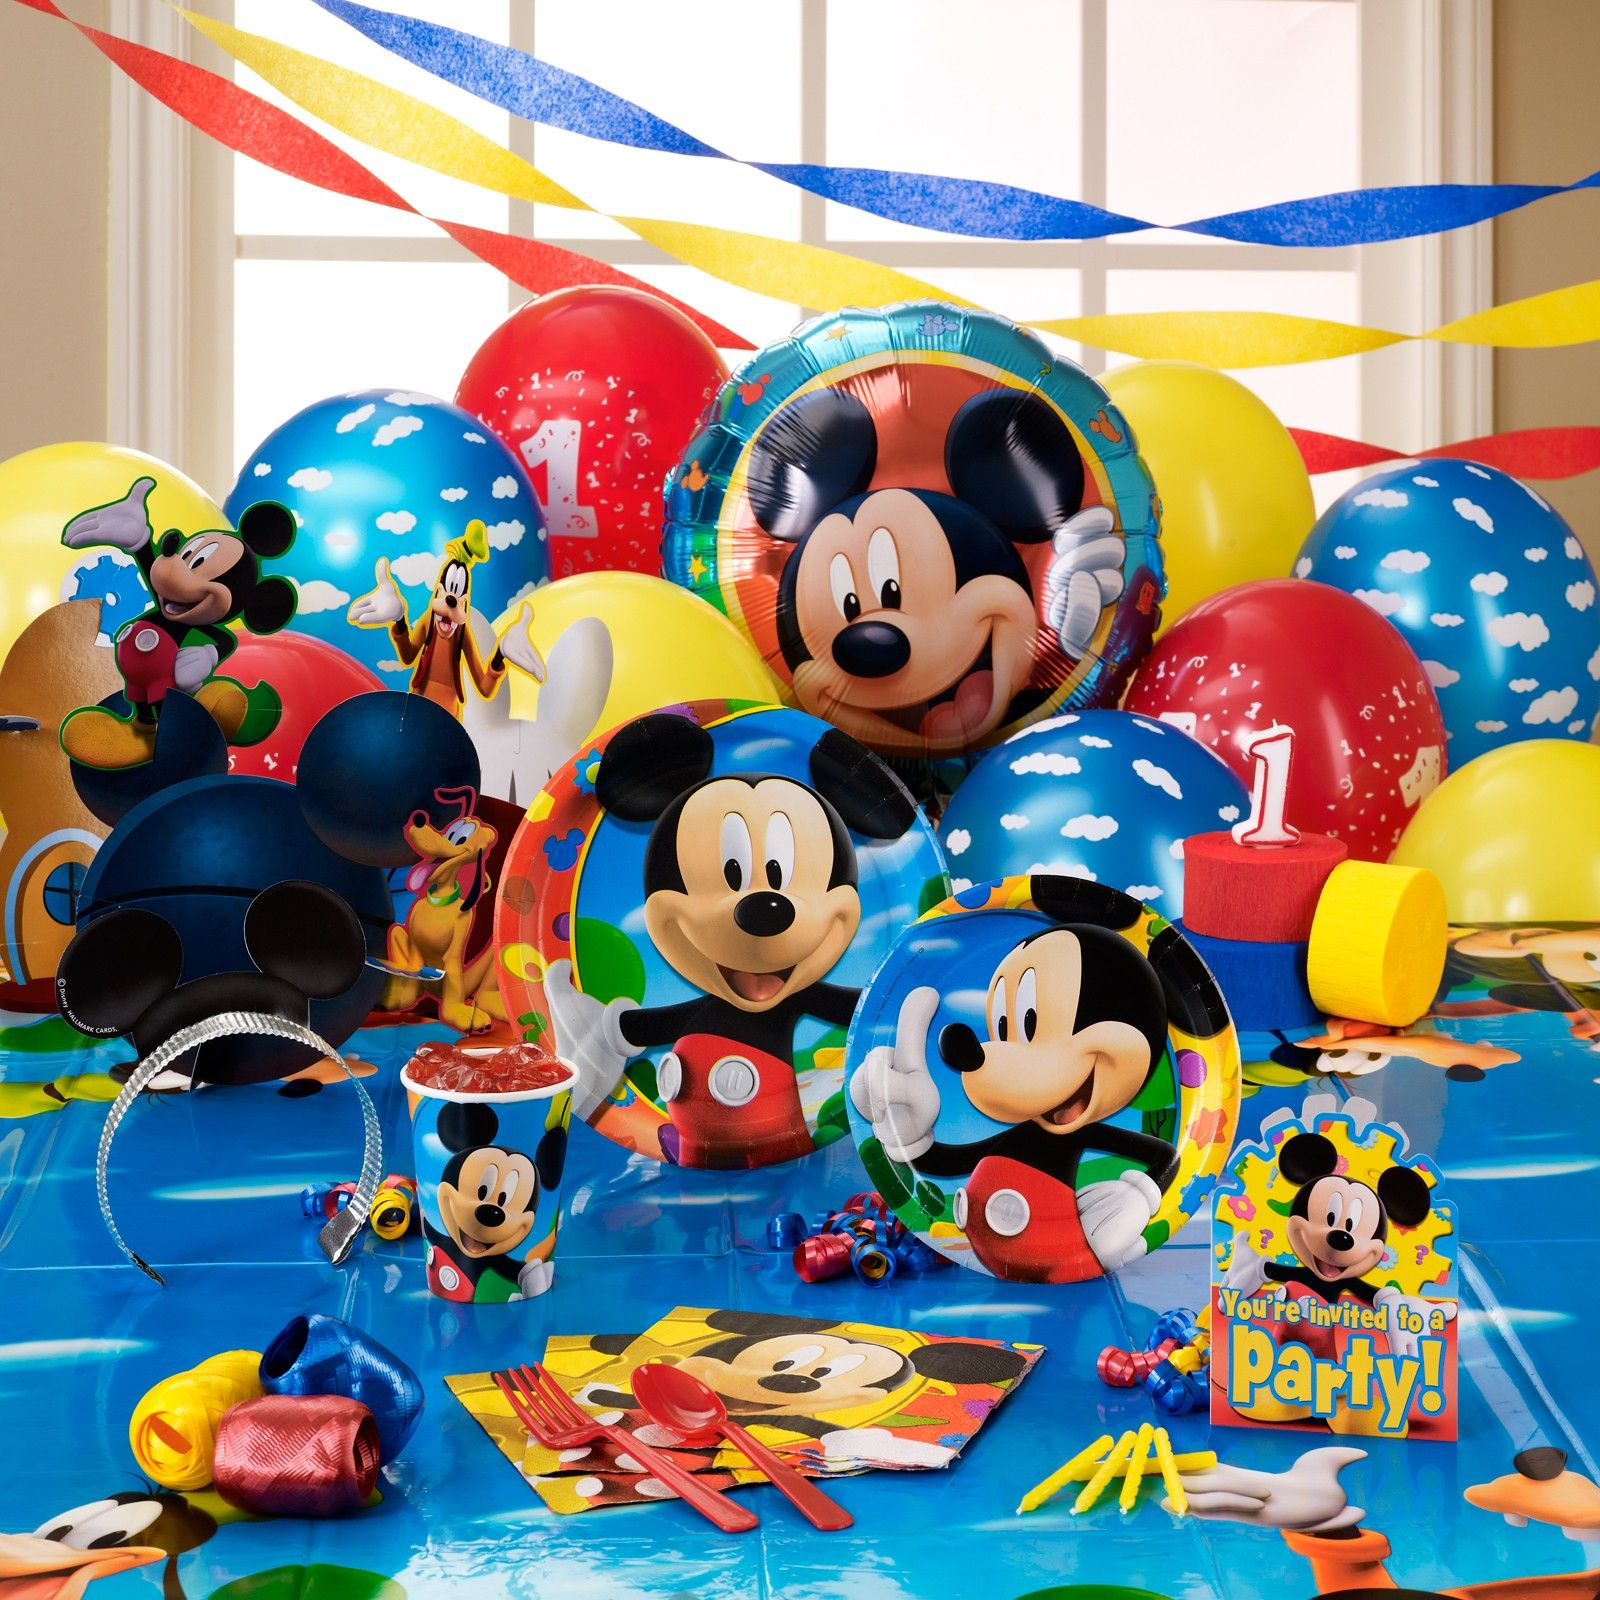 Mickey Mouse3 Mackenzies 1st bday Pinterest Mickey mouse